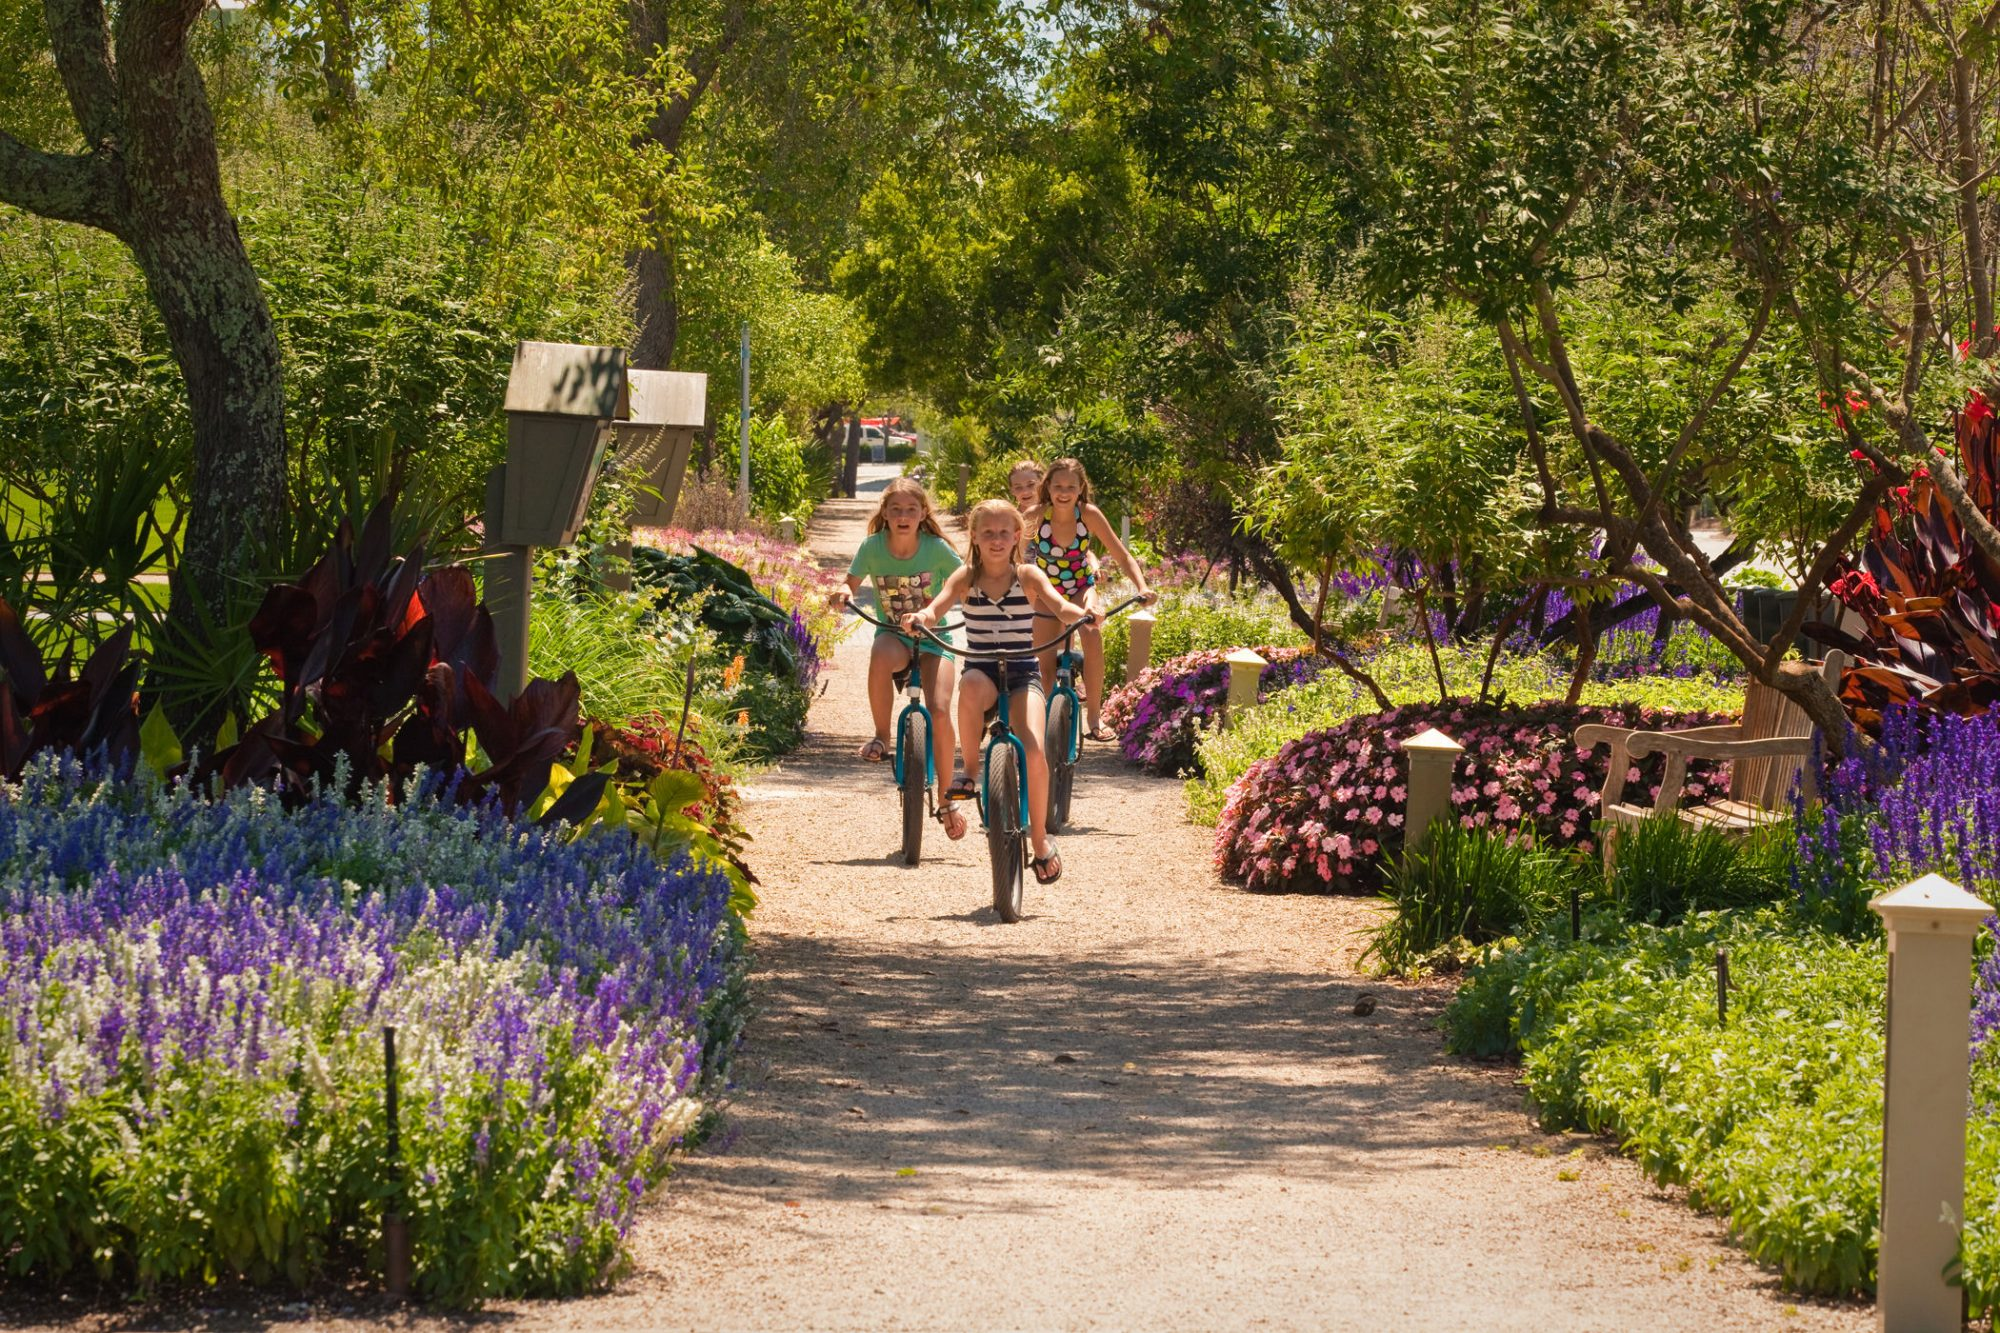 Stop by the WaterColor Bike Barn, adjacent to the BoatHouse, to pick up a bike, and spend the rest of your day exploring the area's extensive woodland trail system, with miles of scenic nature trails that course through preserved state park...